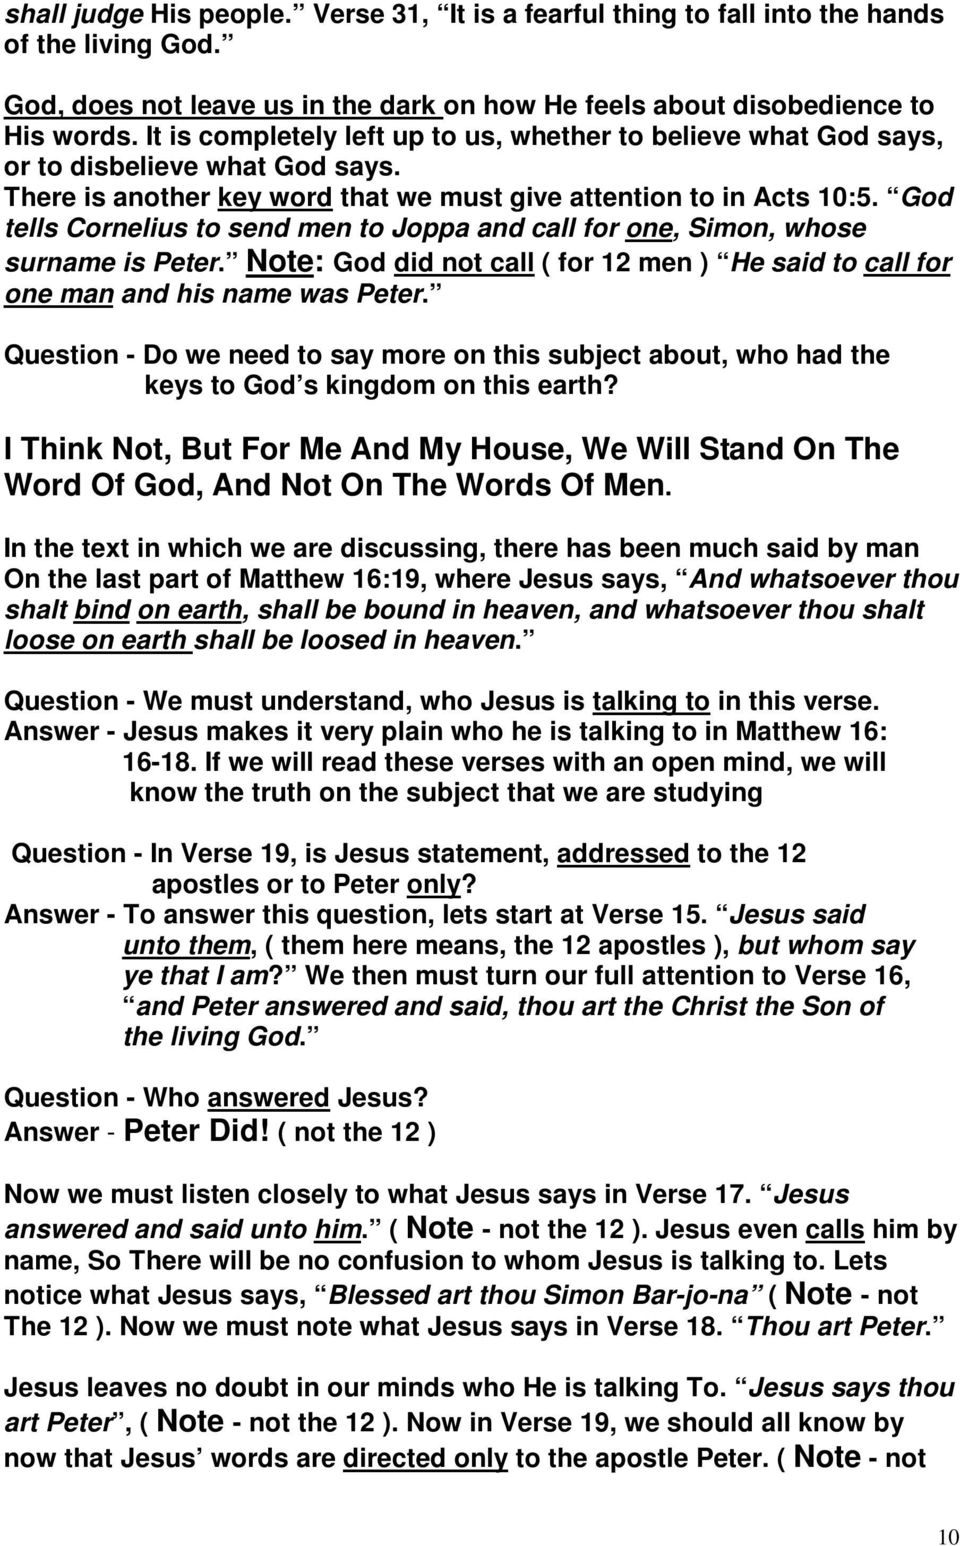 God tells Cornelius to send men to Joppa and call for one, Simon, whose surname is Peter. Note: God did not call ( for 12 men ) He said to call for one man and his name was Peter.